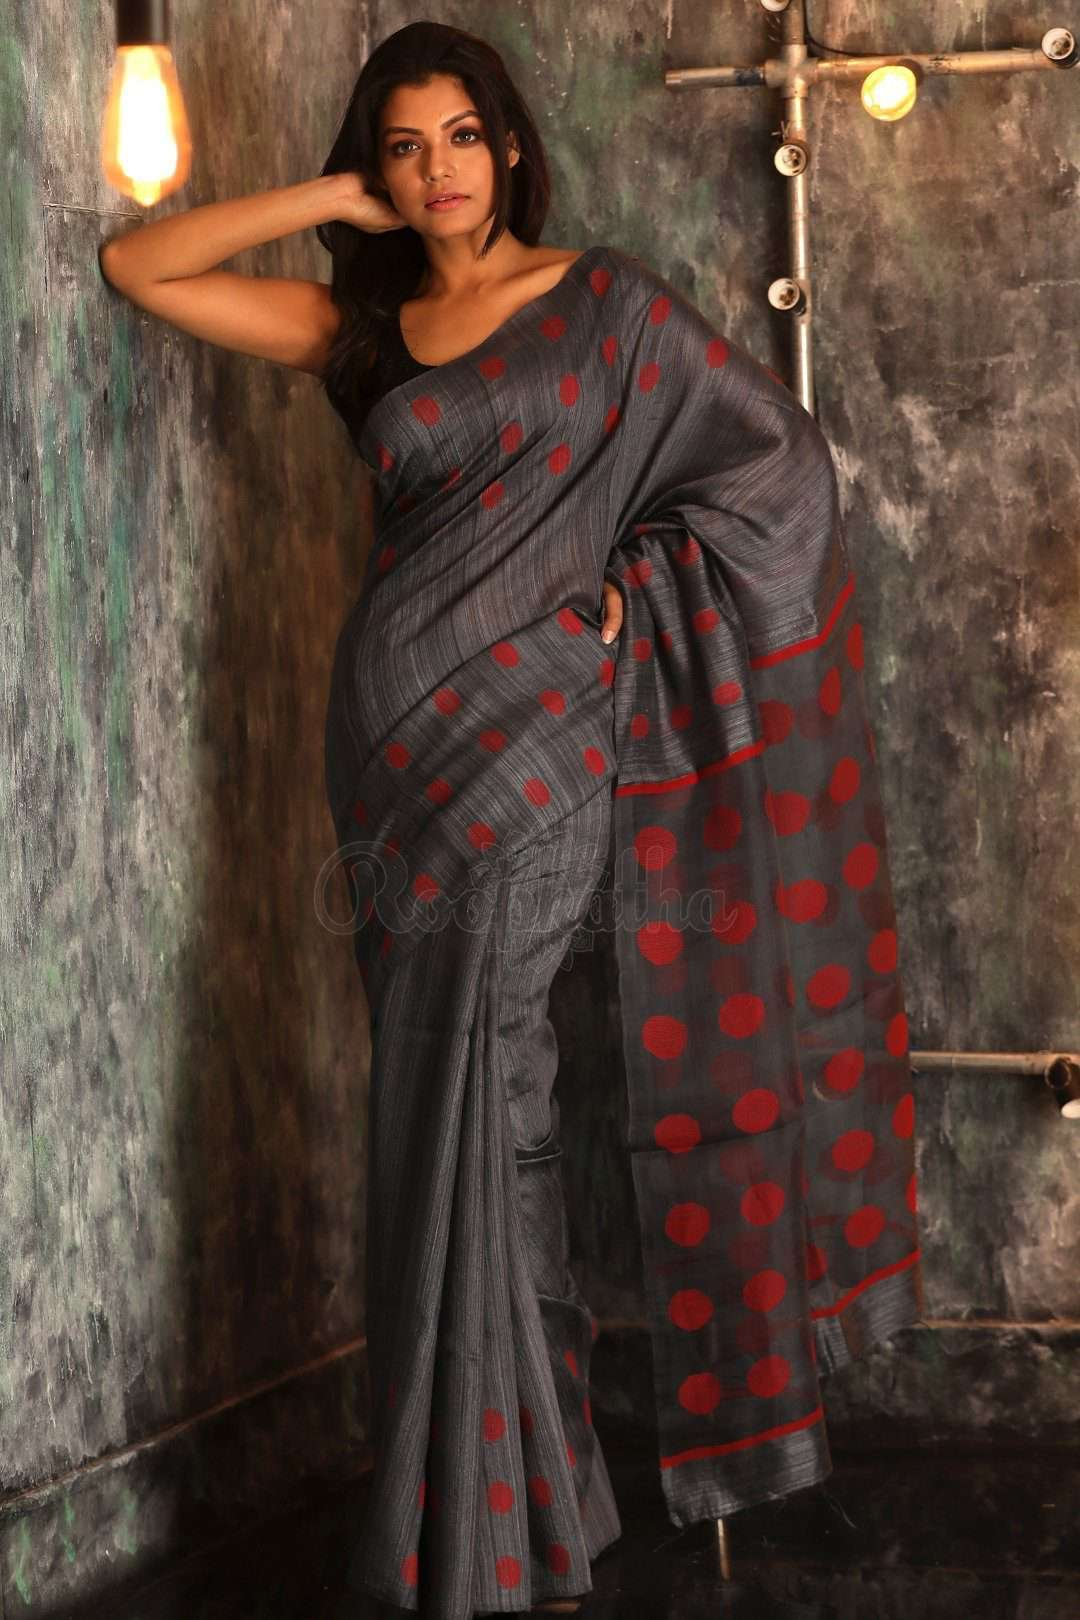 65beed91acc93 Slate Grey Matka Silk Saree With Woven Design - Roopkatha - A Story of Art